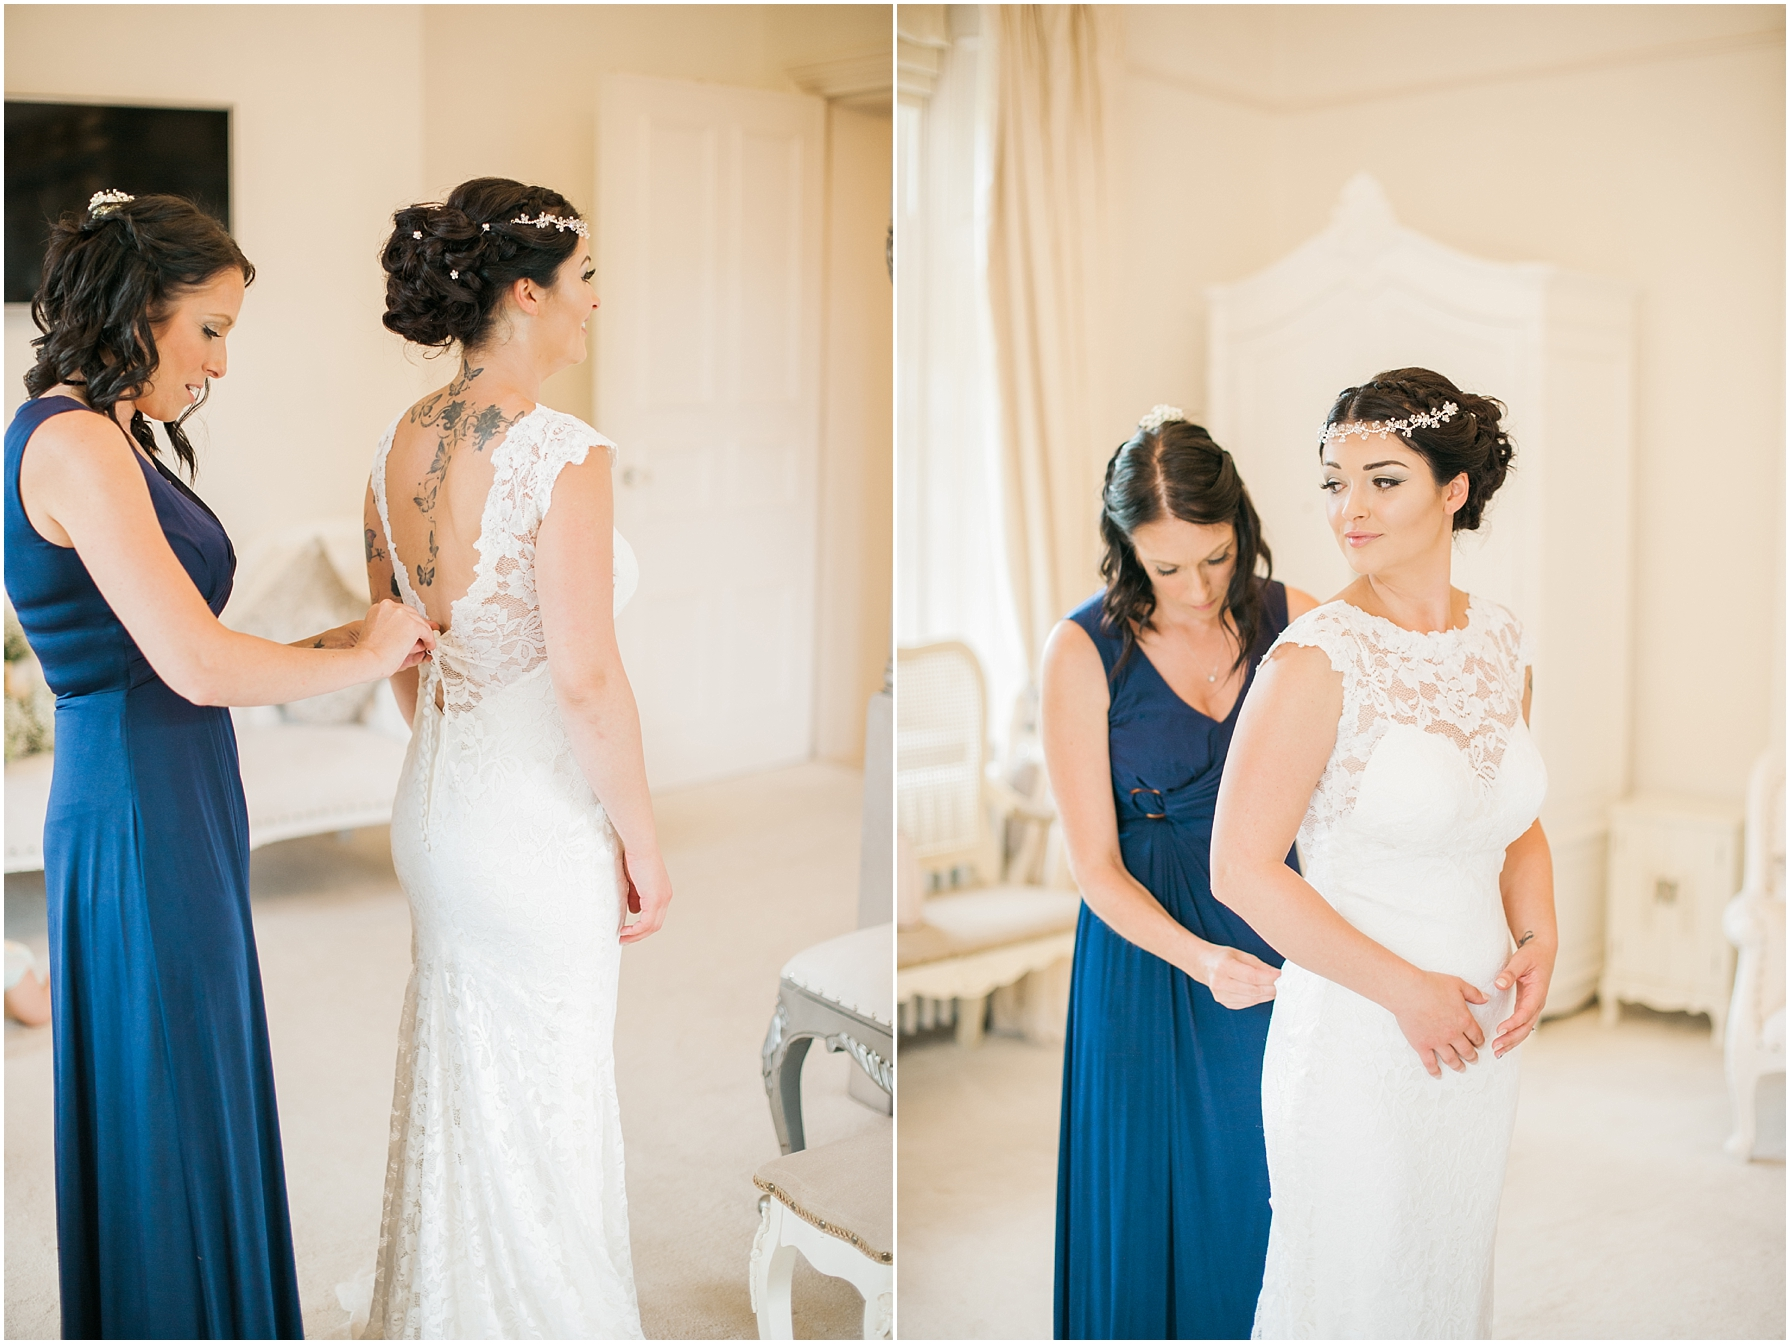 bride having her dress done up by her bridesmaid